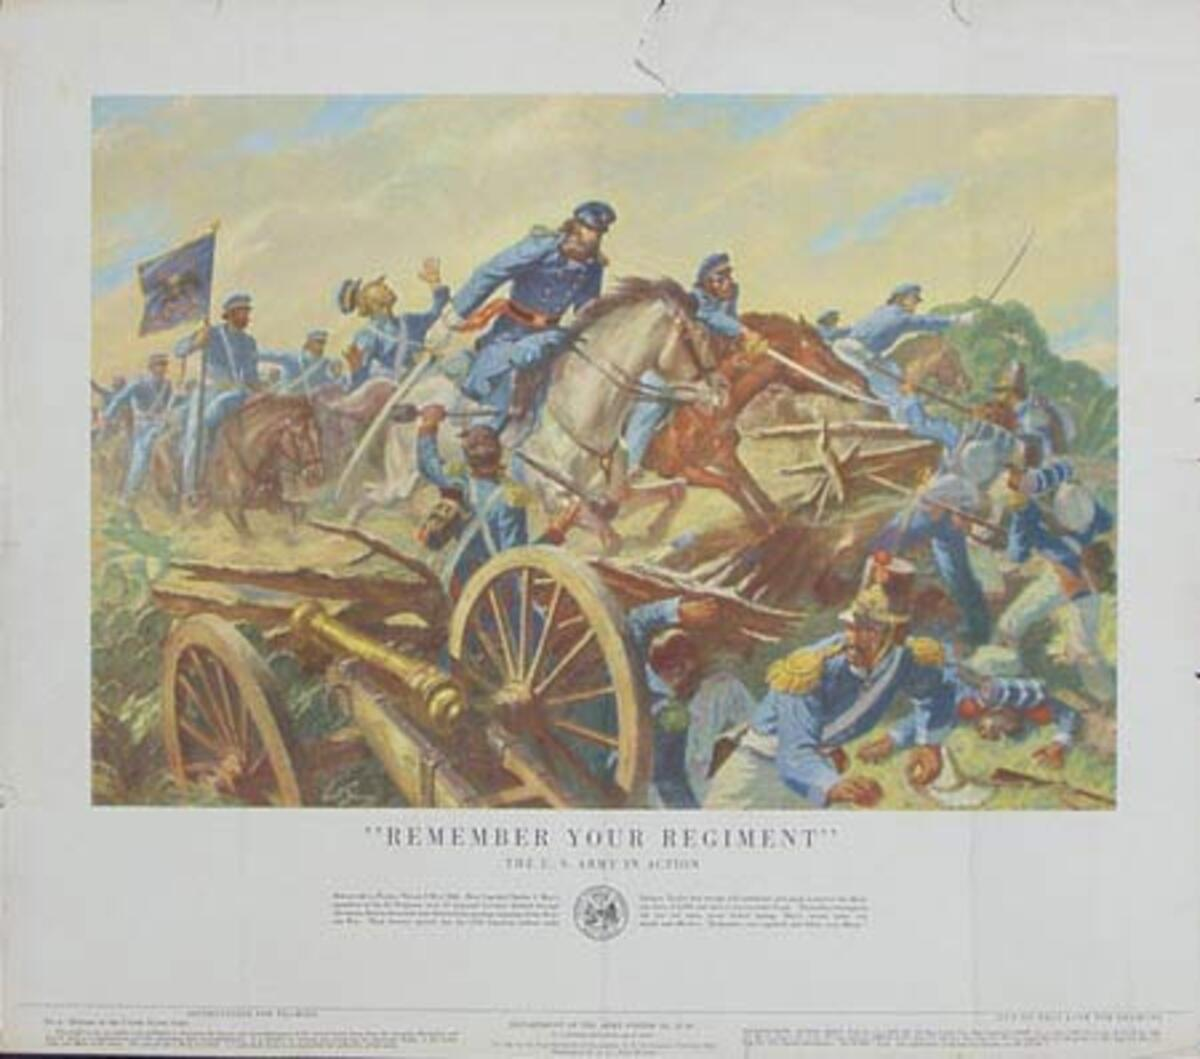 Remember Your Regiment U.S. Army in Action Original Vintage Army Propaganda Poster